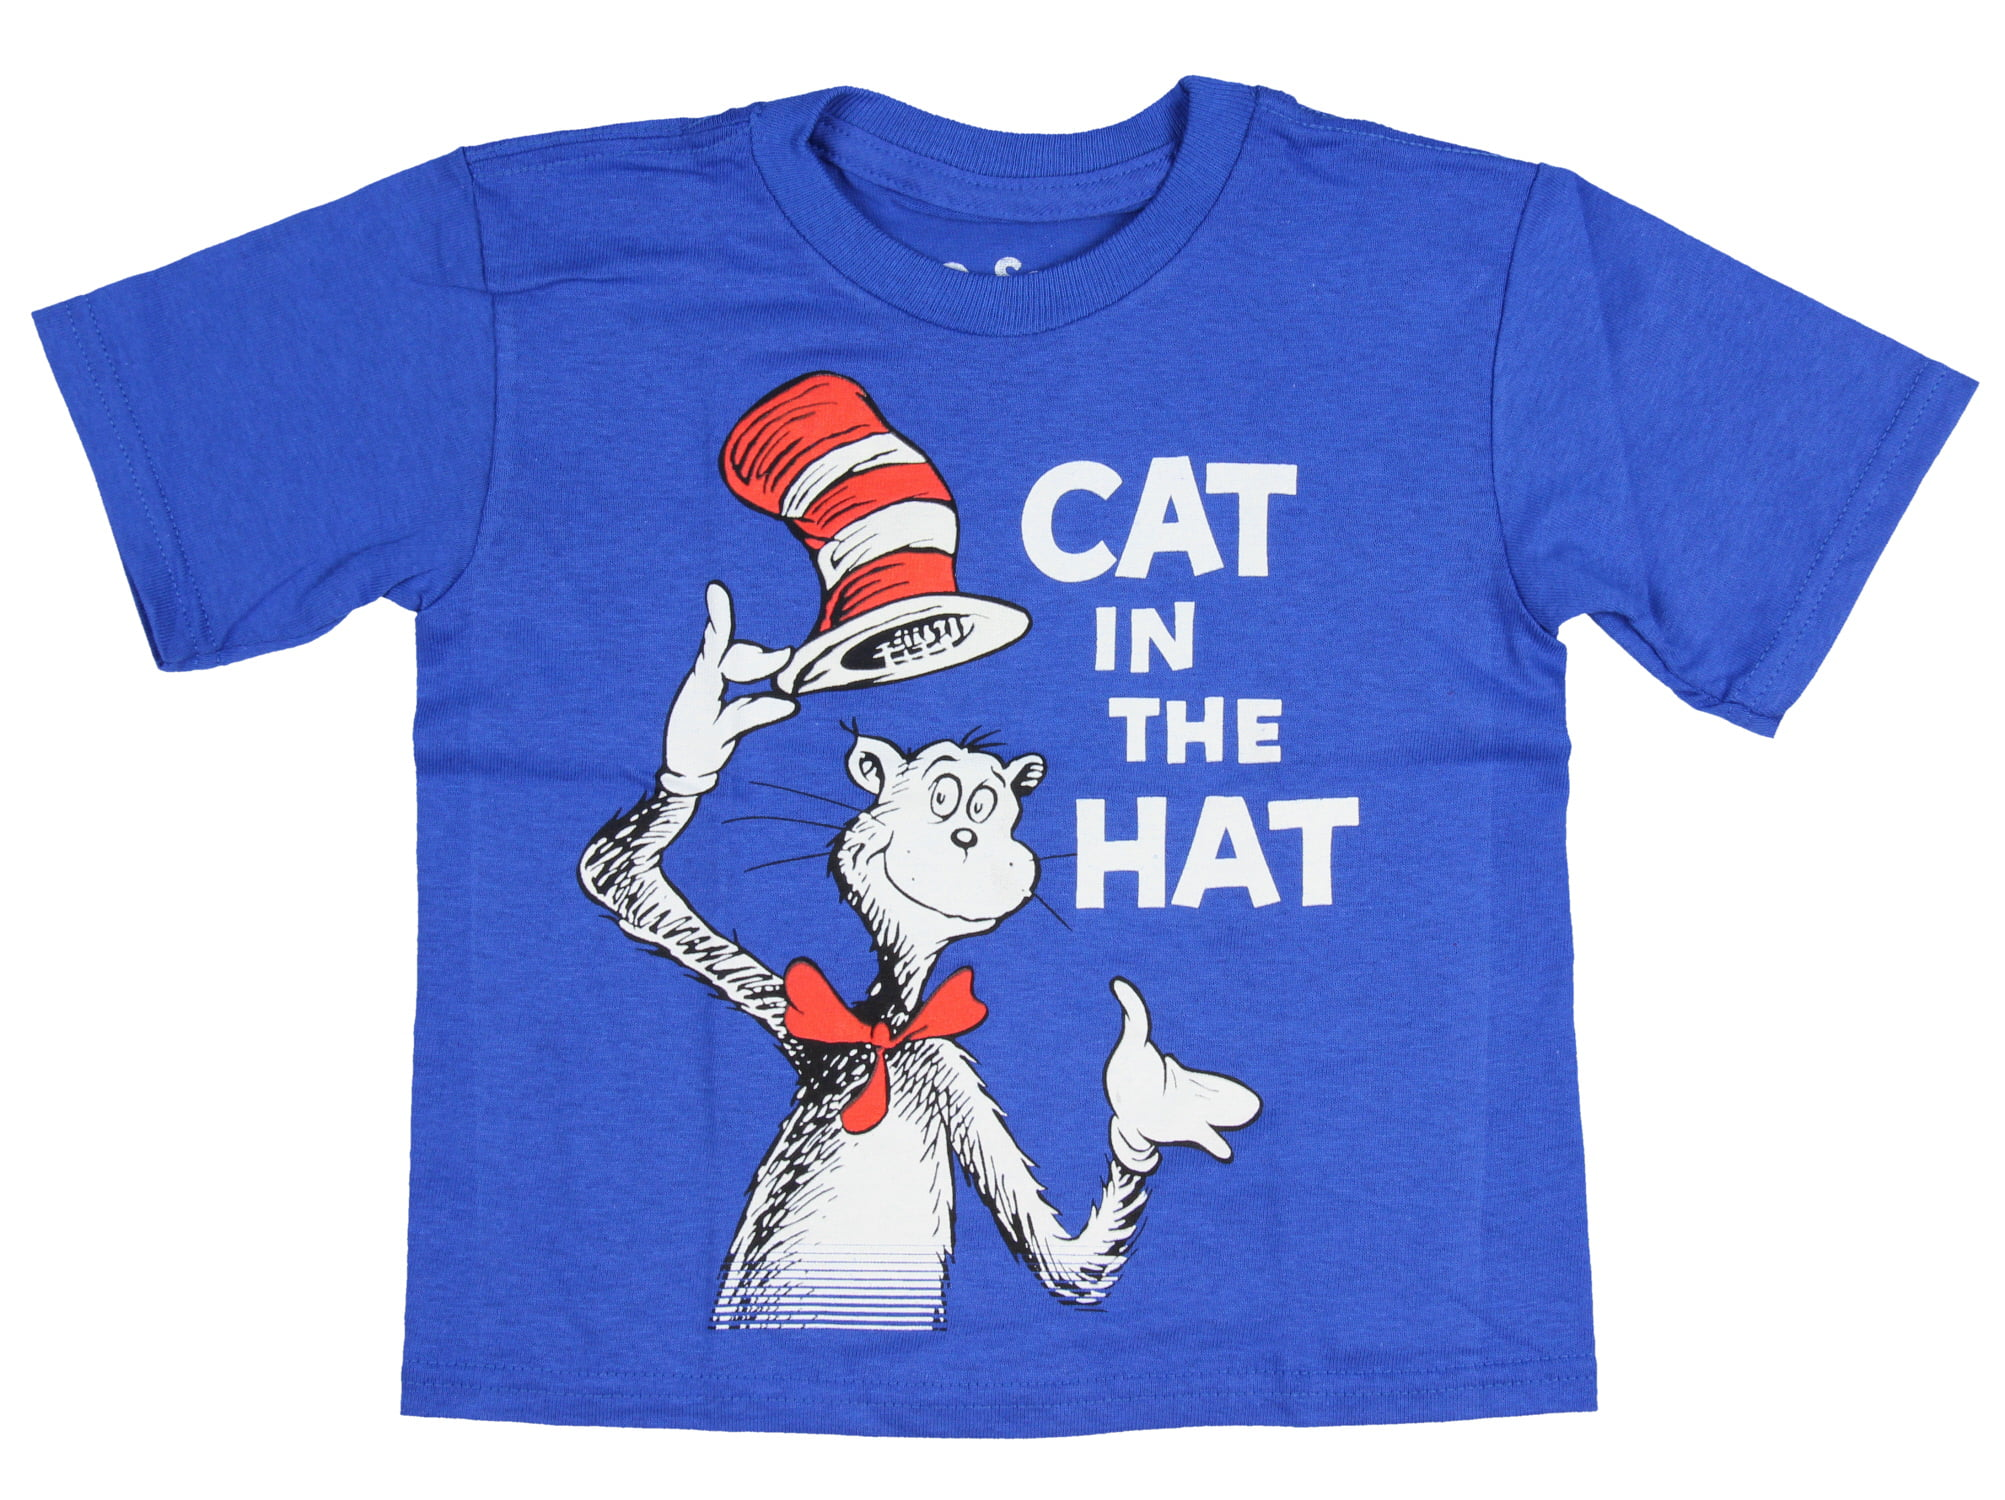 New Toddler Dr Seuss T Shirt  Sizes 3T 4T  Cat in the Hat Thing 1 /& 2 Read